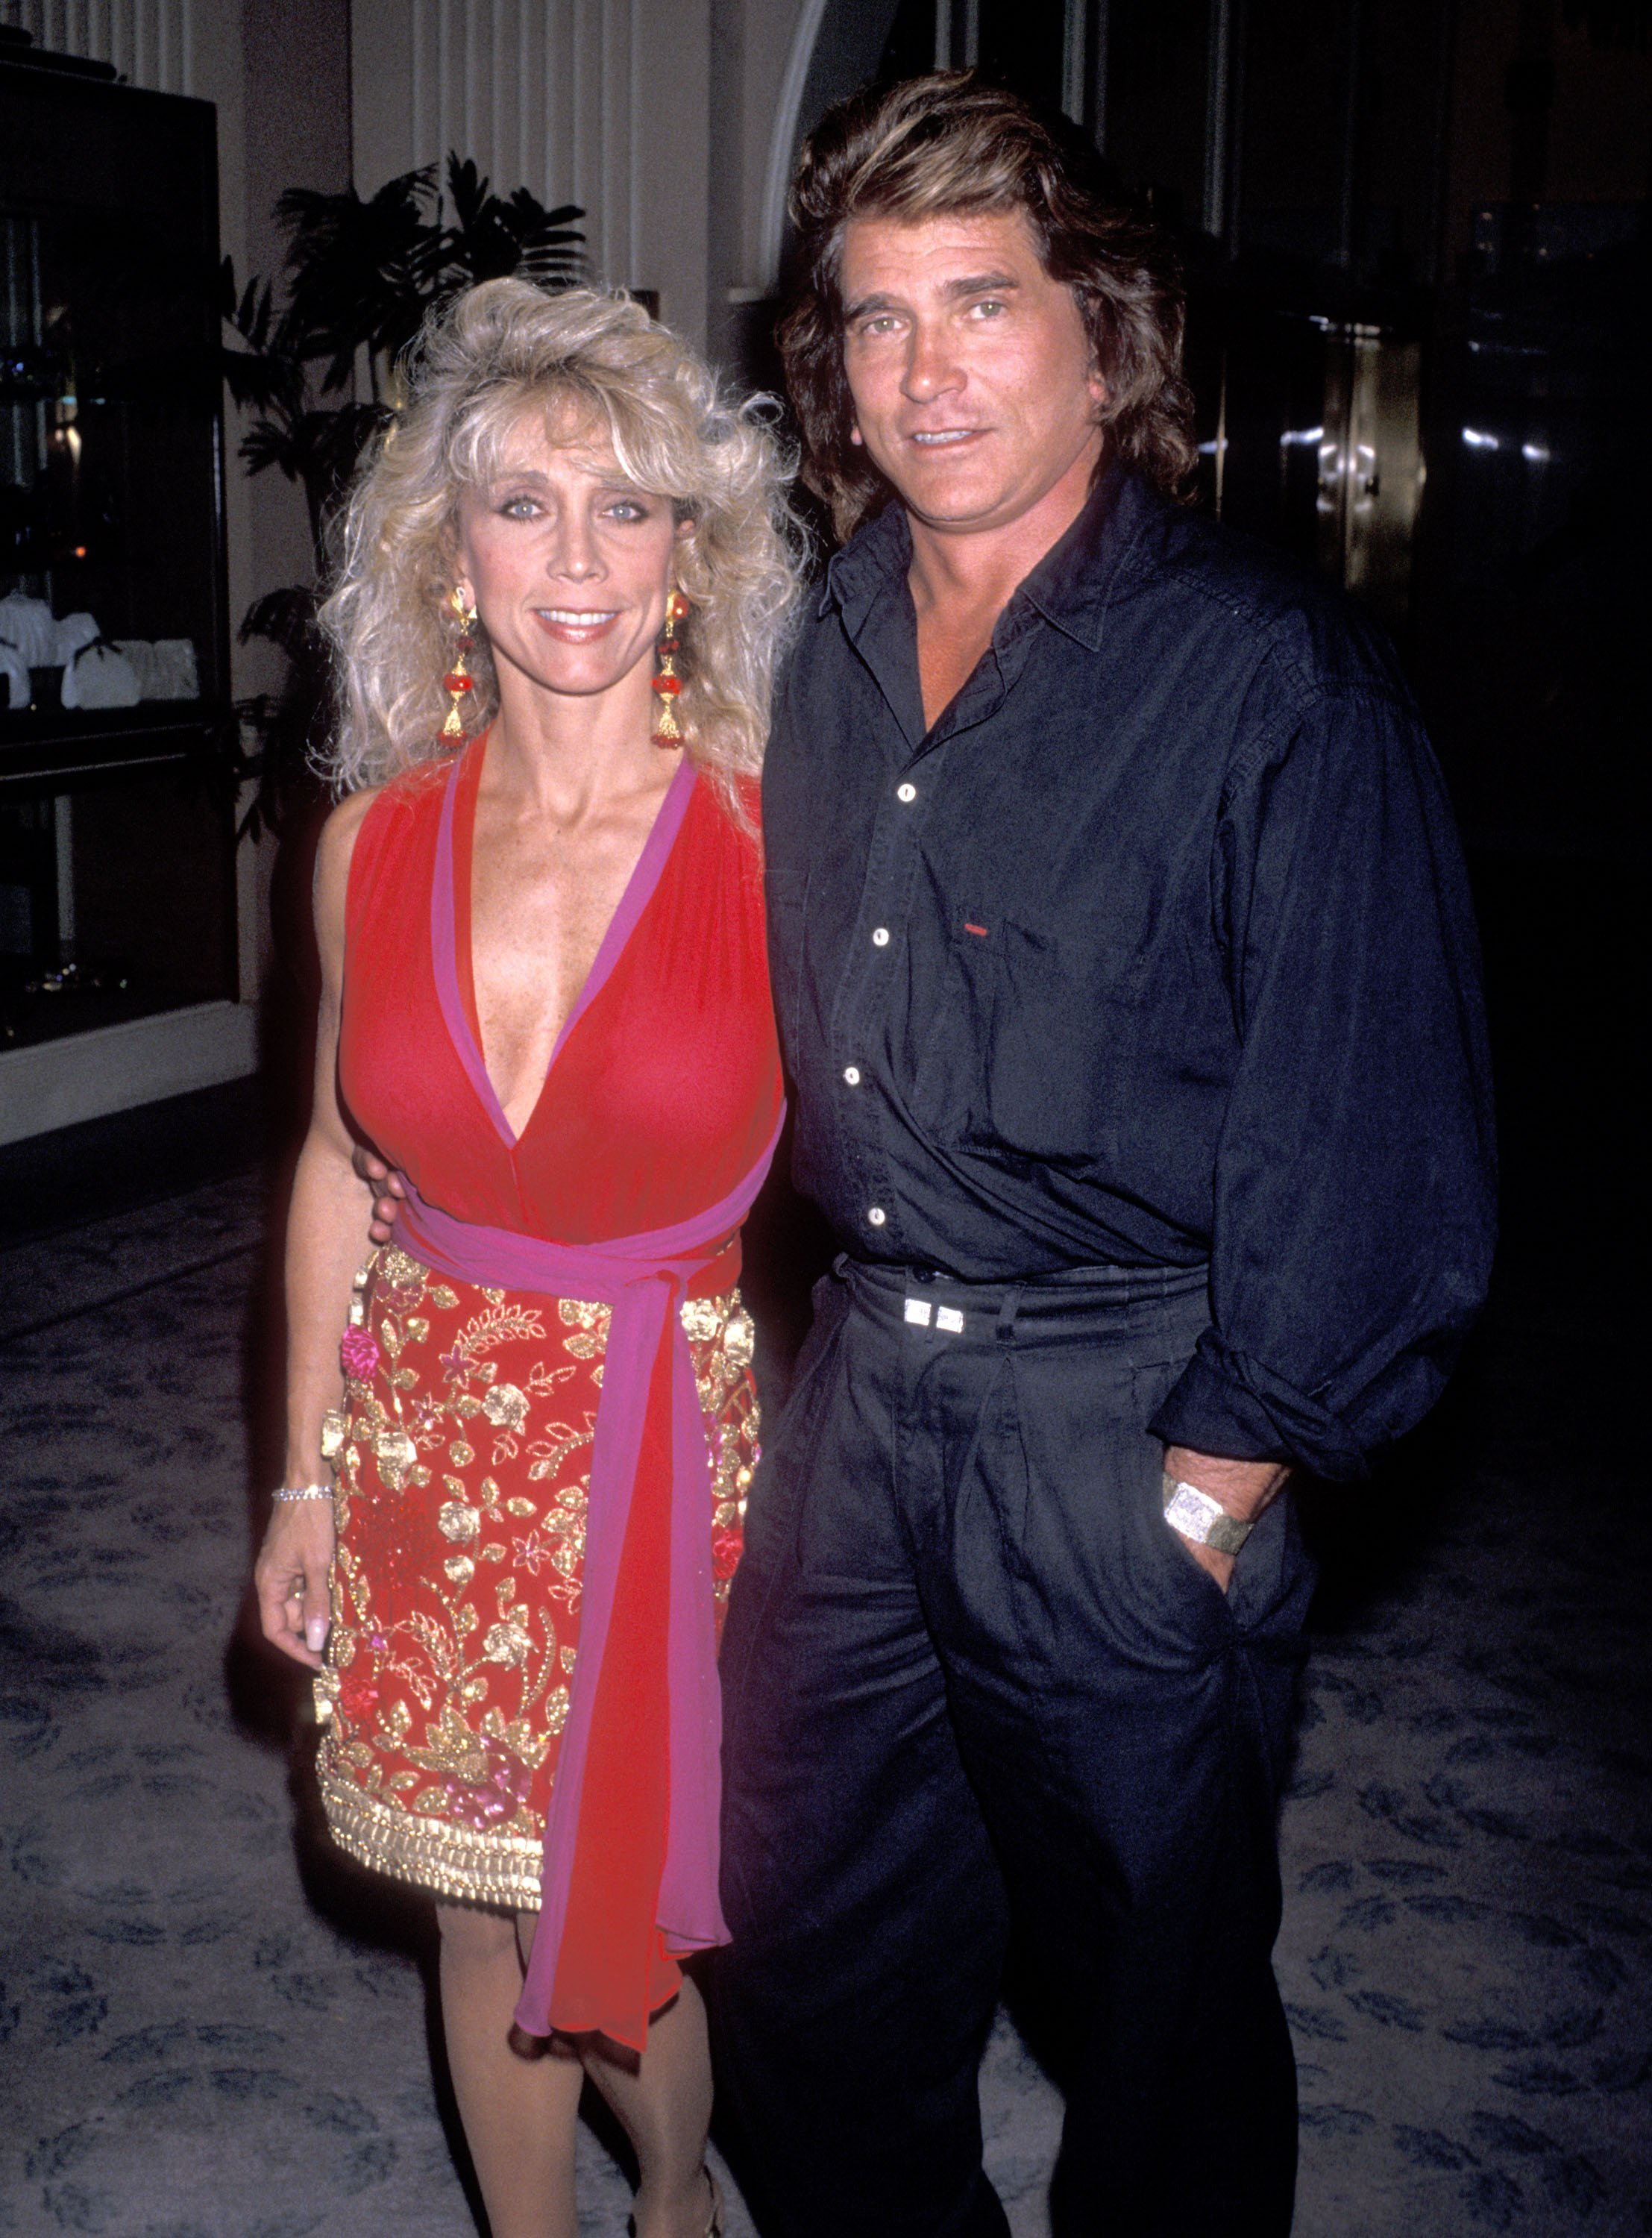 Michael Landon and wife Cindy Landon attend the National Down Syndrome Congress' Third Annual Michael Landon Celebrity Gala on October 20, 1989 | Photo: GettyImages